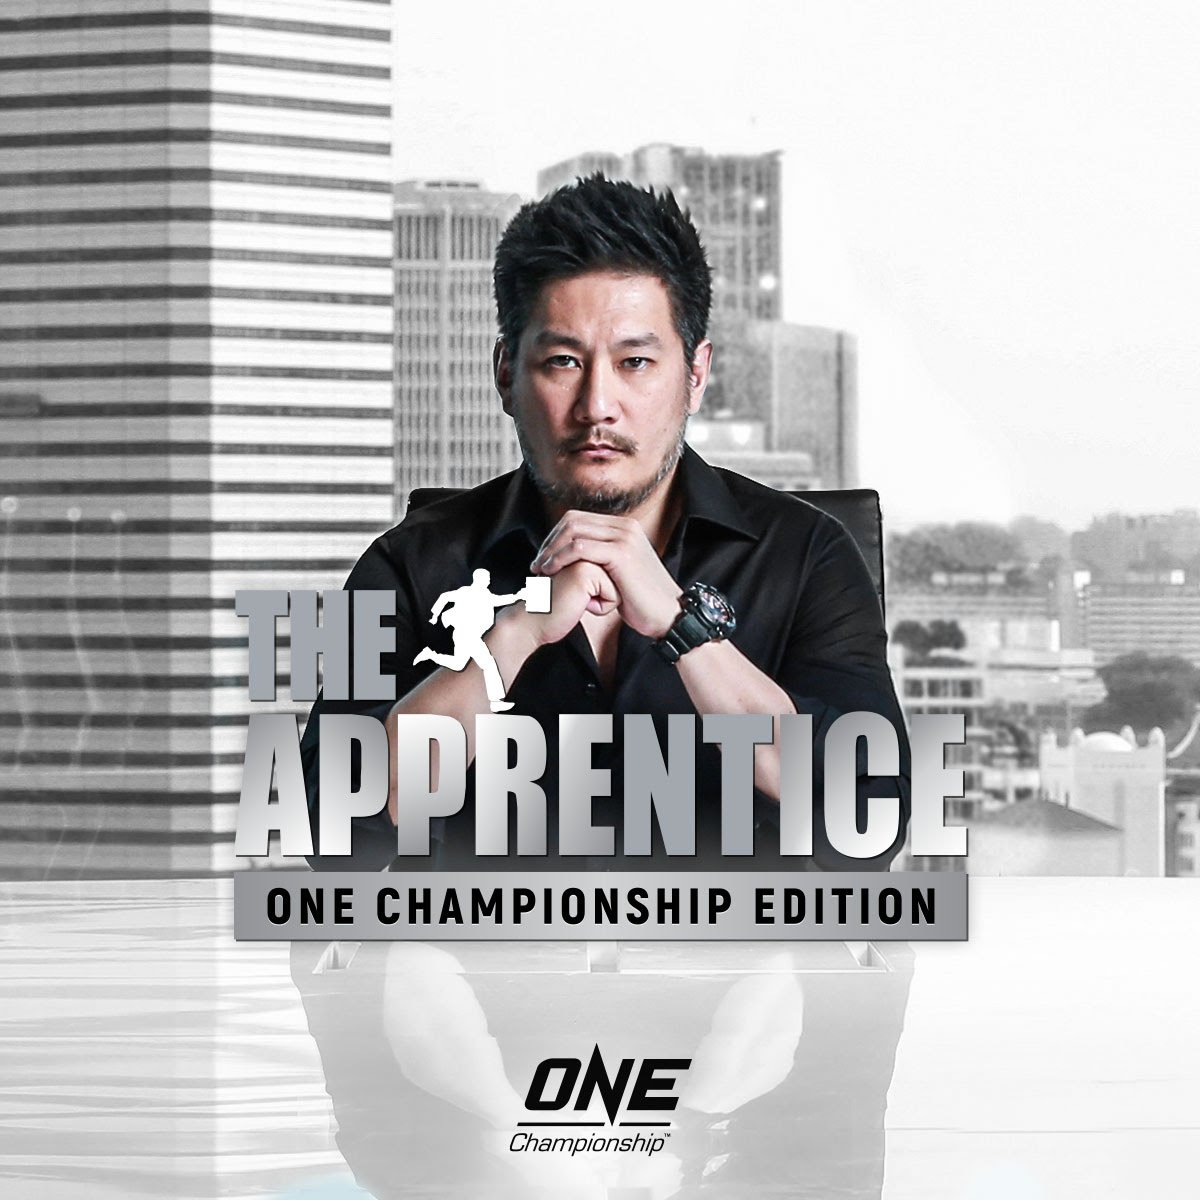 ONE Championship partners with Refinery Media to produce 'The Apprentice'